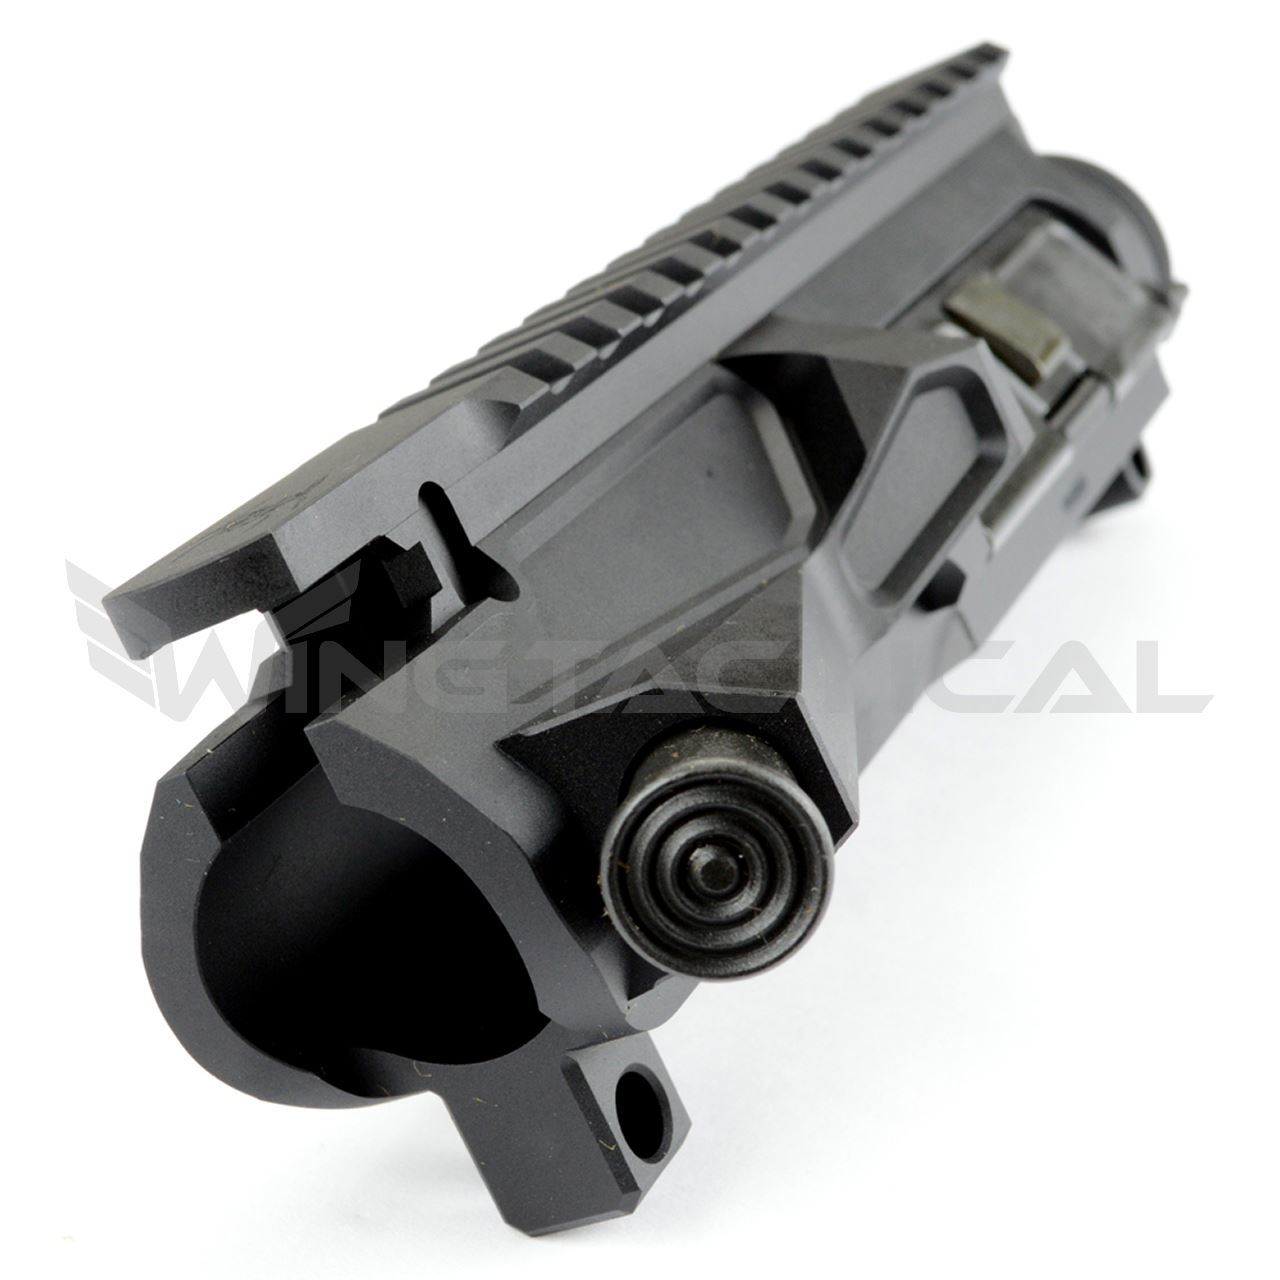 Best AR-15 Upper Receivers | 2019 Product Review Guide